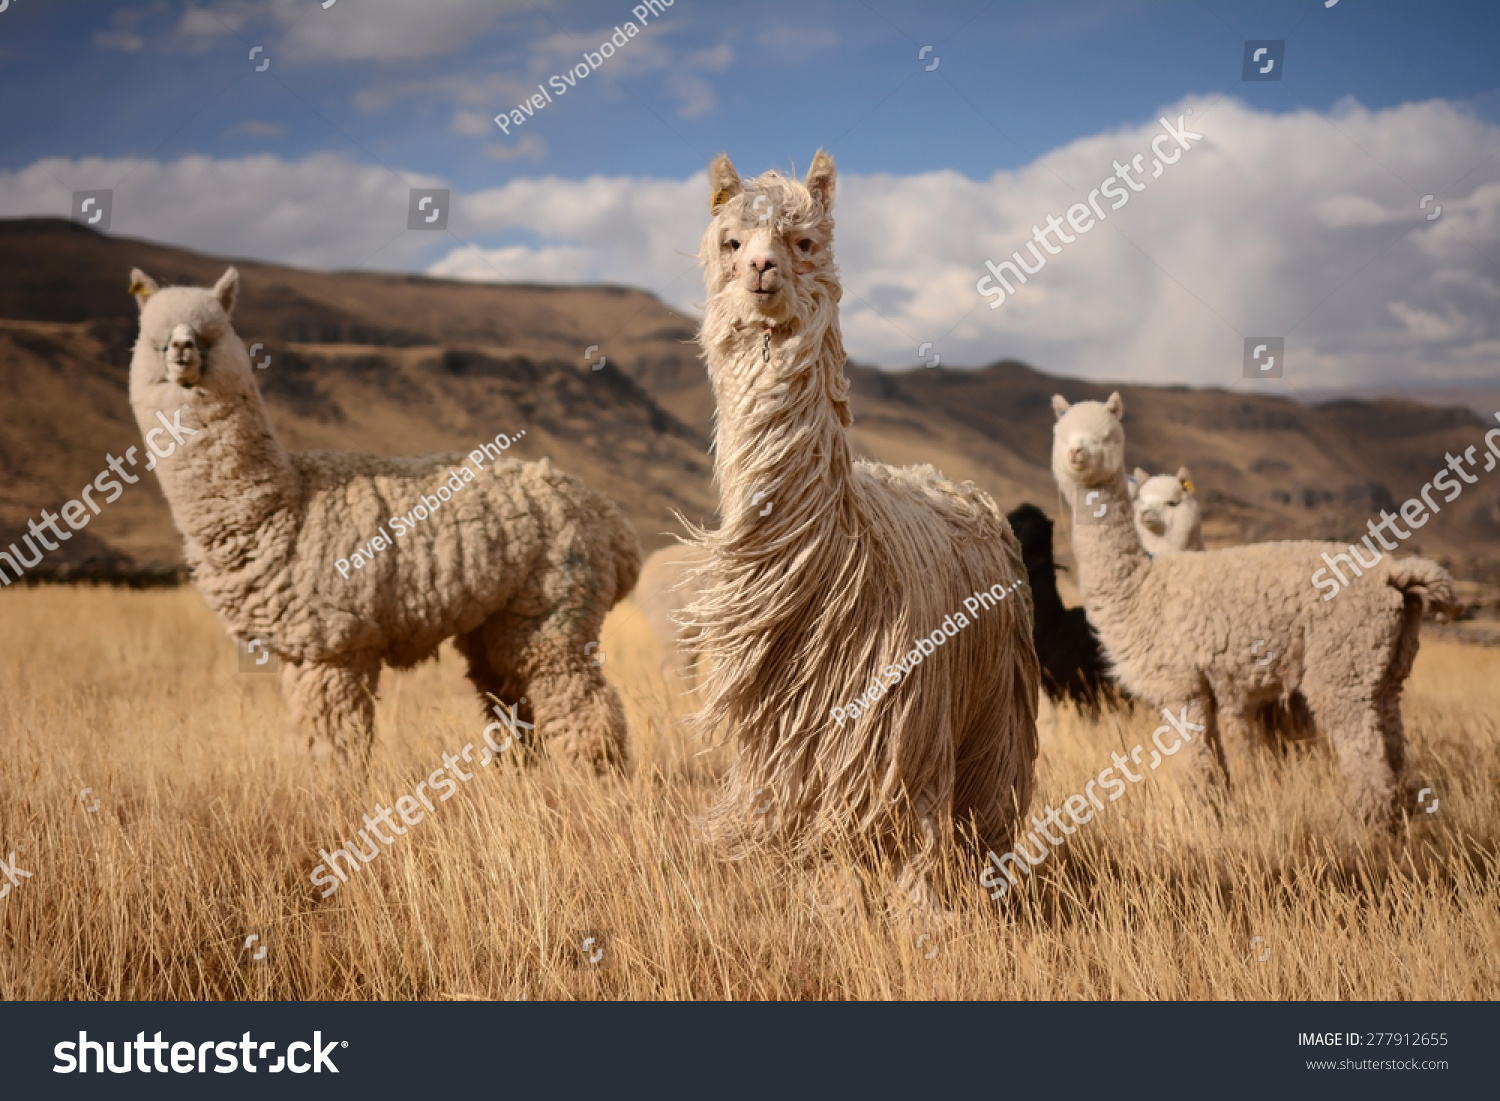 Llamas (Alpaca) in Andes Mountains, Peru, South America #277912655